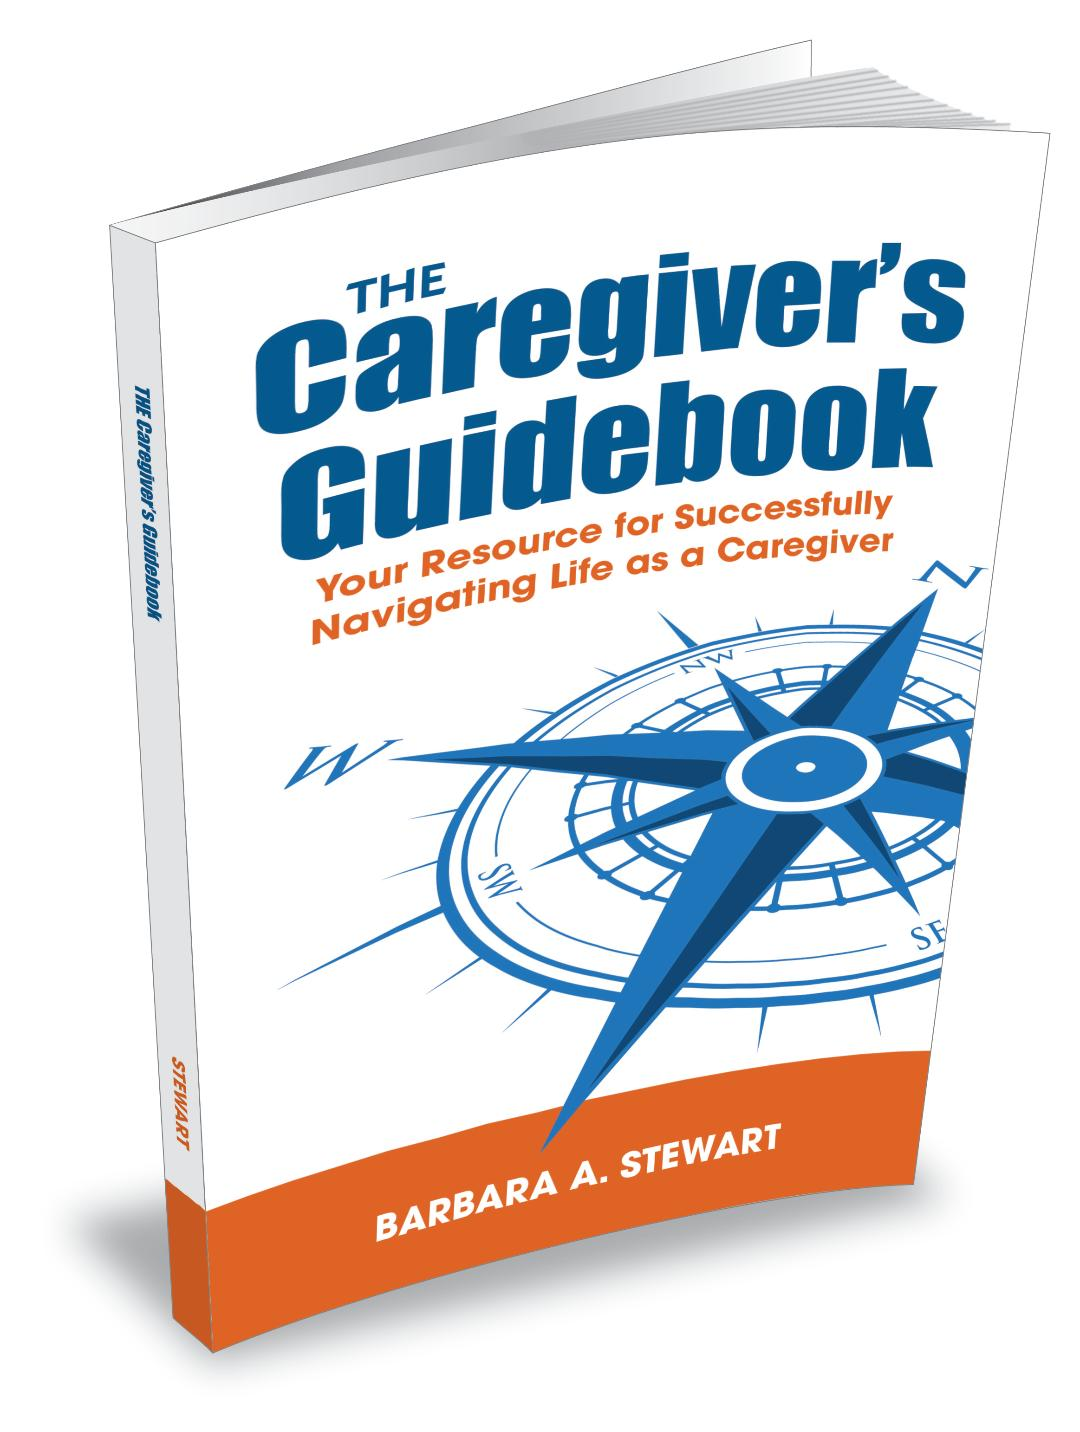 Caregiver Guidebook (1).jpg